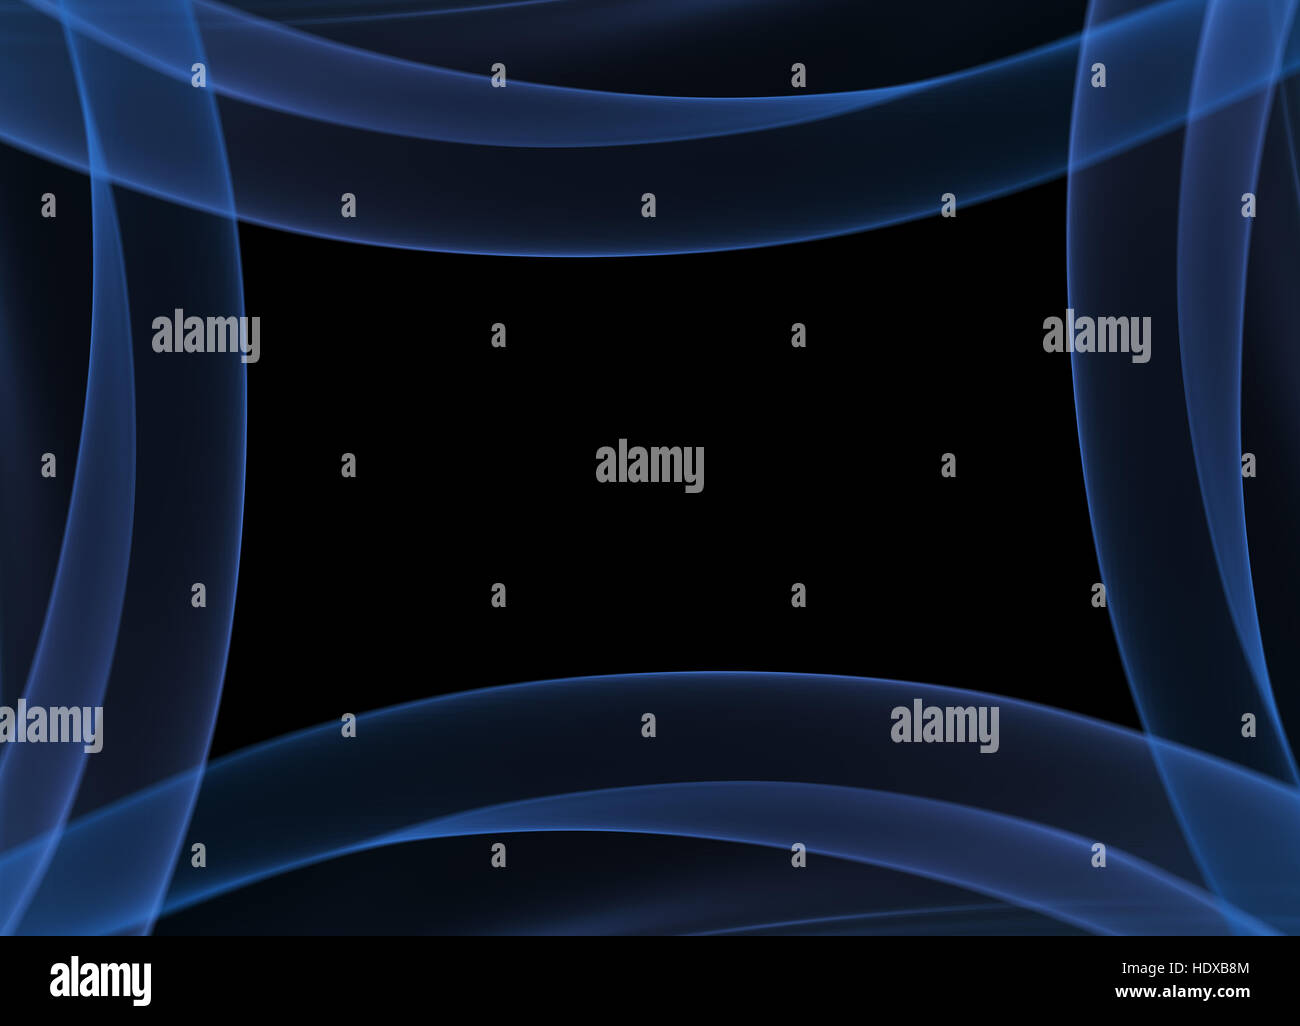 Abstract Blue Flame Smoke Frame Over Black Background With